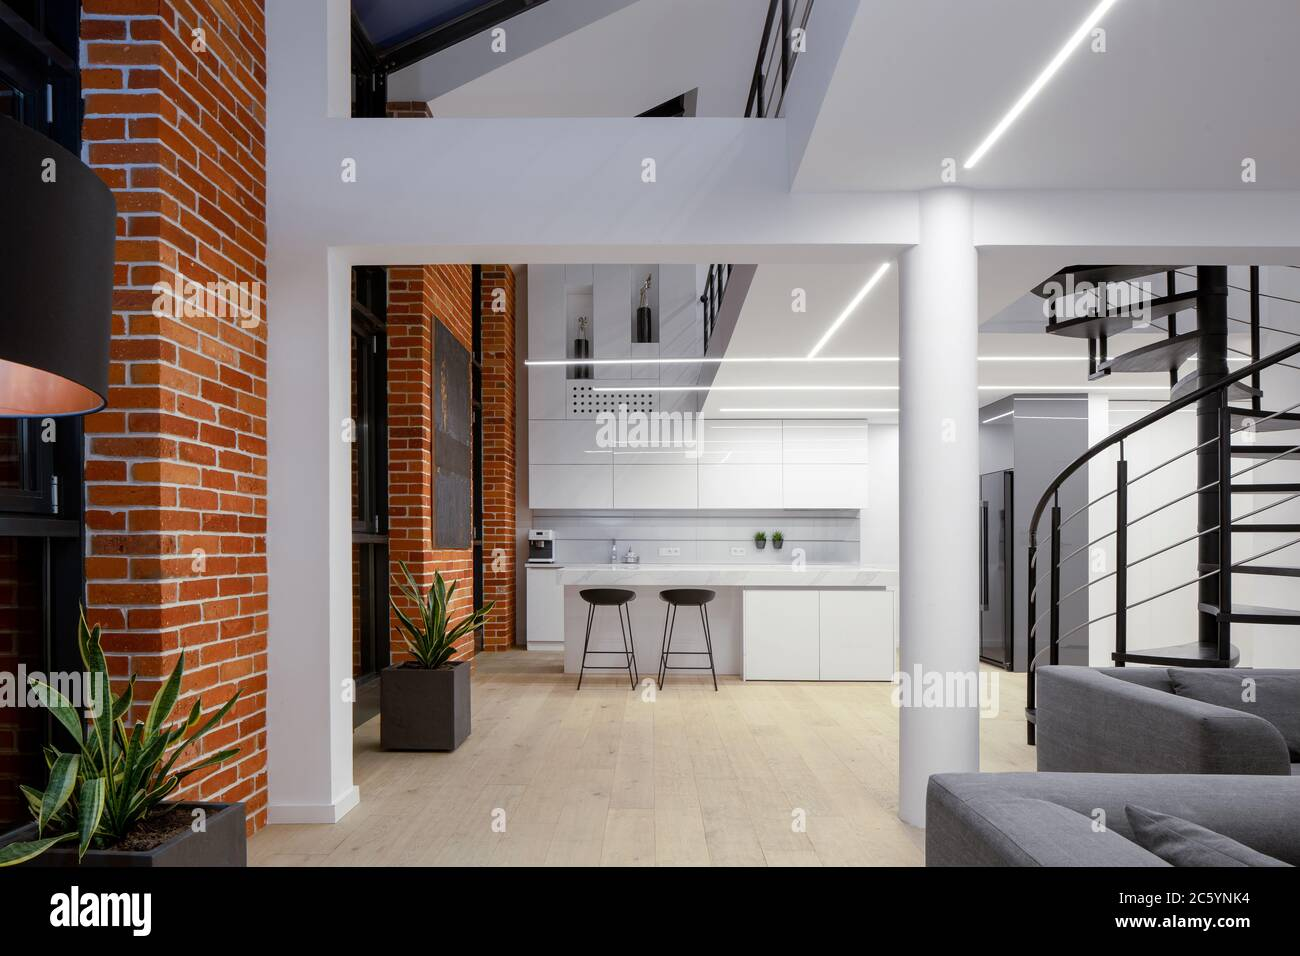 Spacious Two Floor Apartment With Brick Walls White Pillars And Wooden Floor Stock Photo Alamy